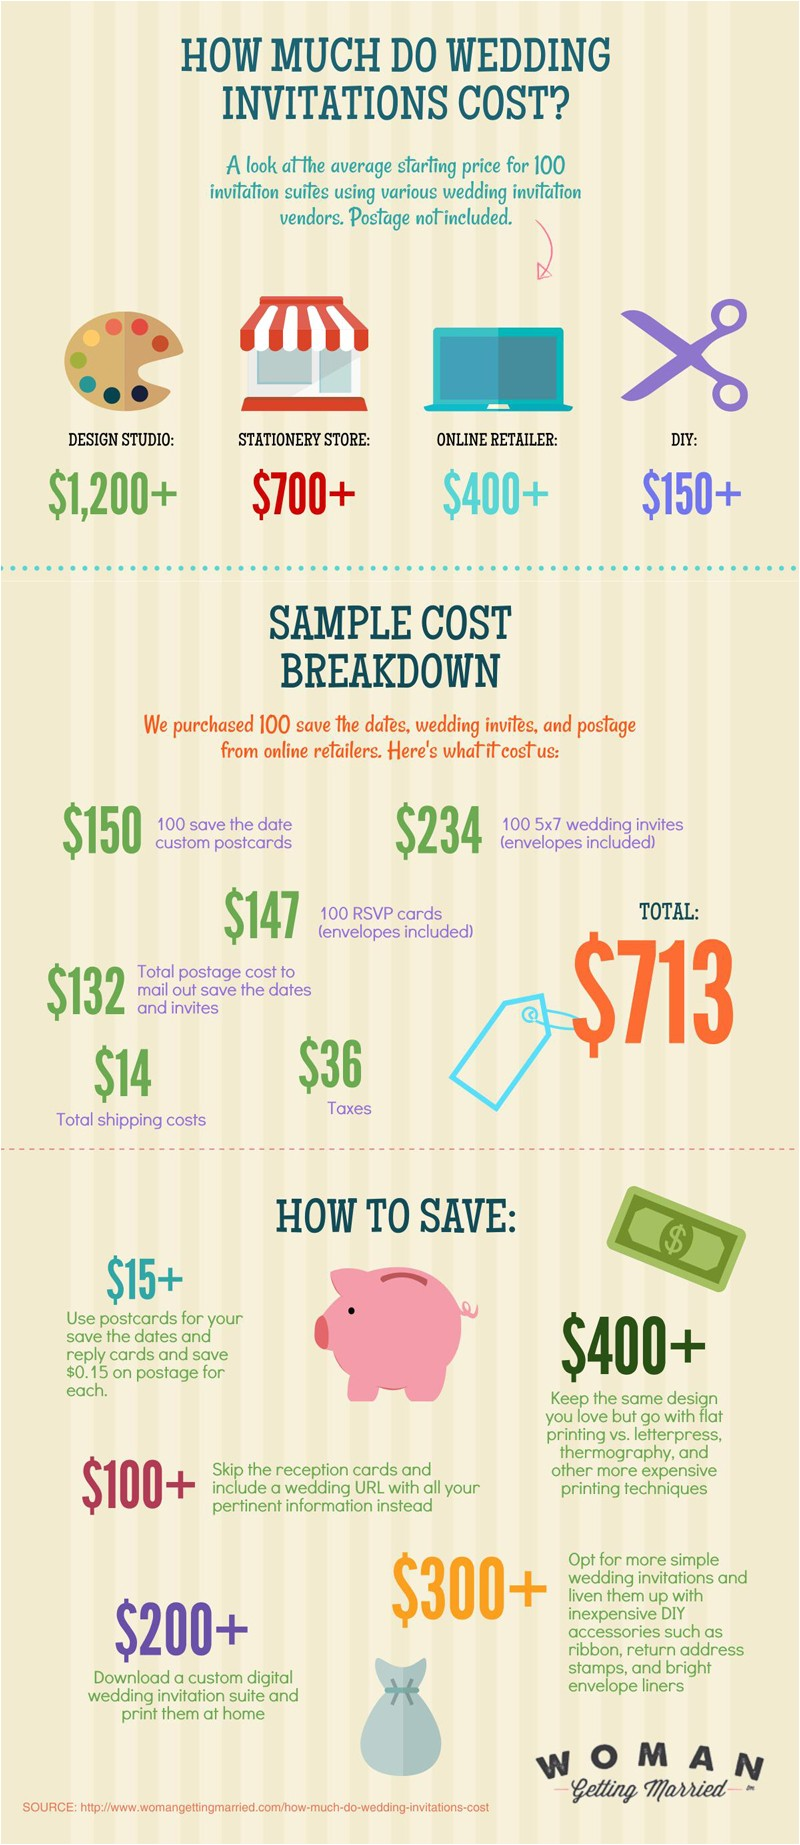 how much do wedding invitations cost